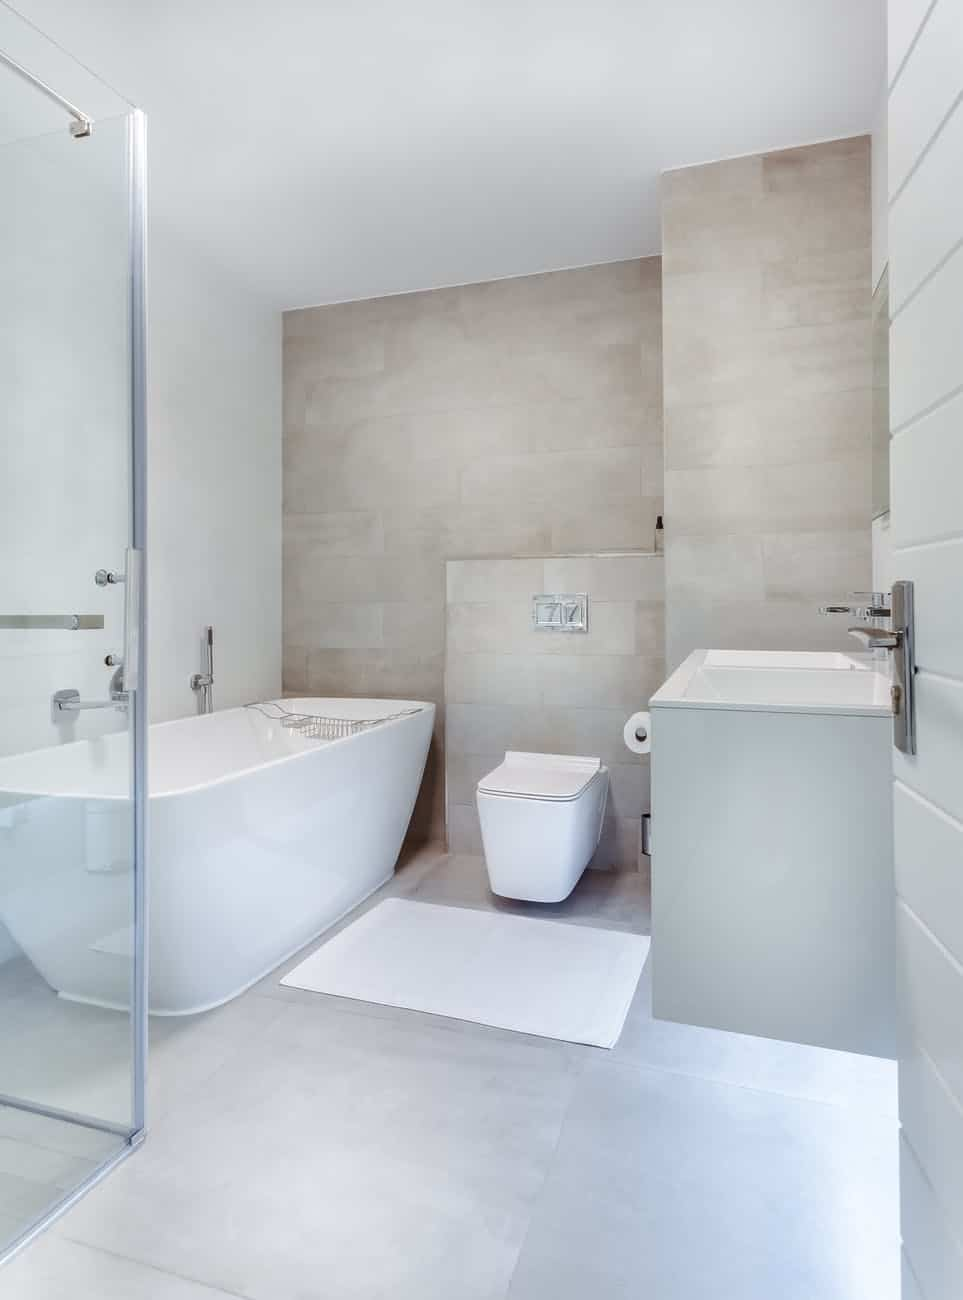 Bathroom Cleaning Tips: How To Have It Clean And Fresh